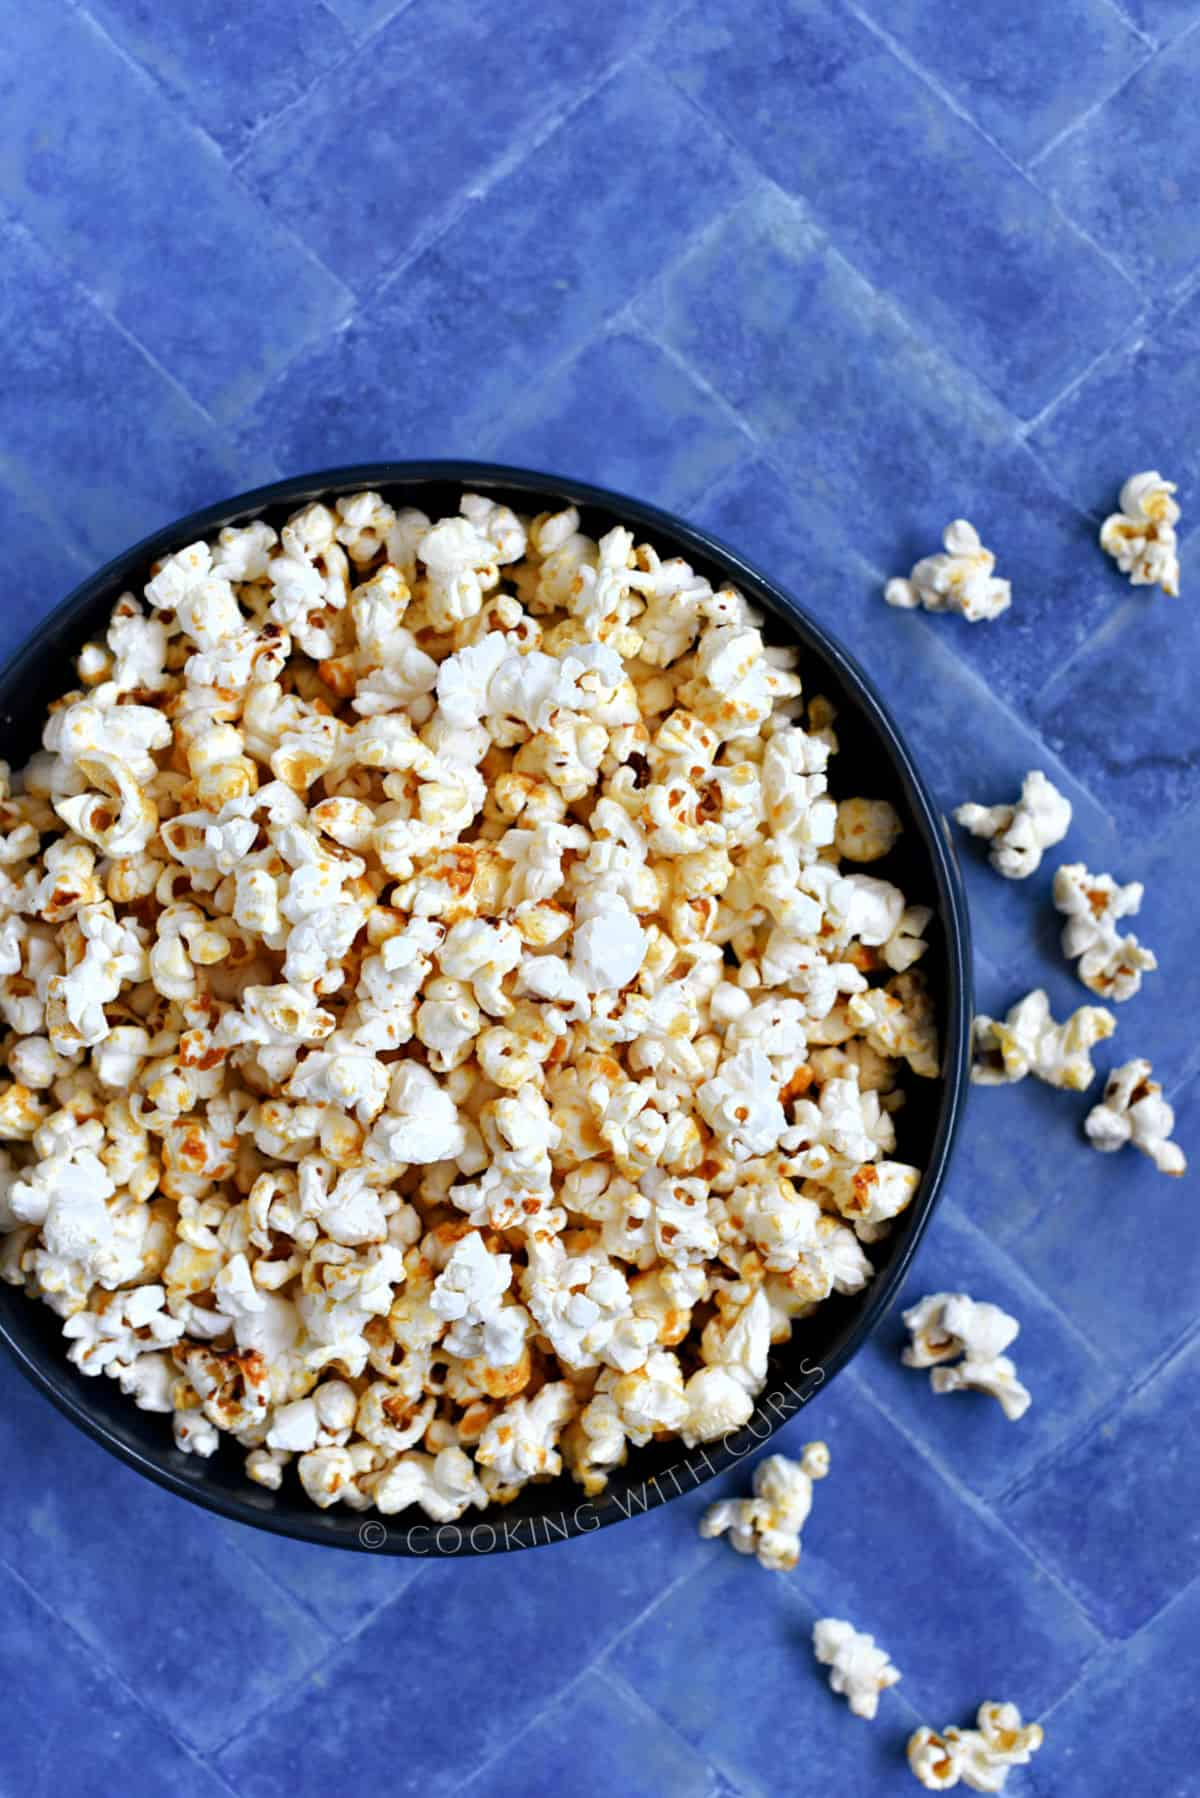 A bowl full of kettle corn popcorn sitting on a blue tile background.